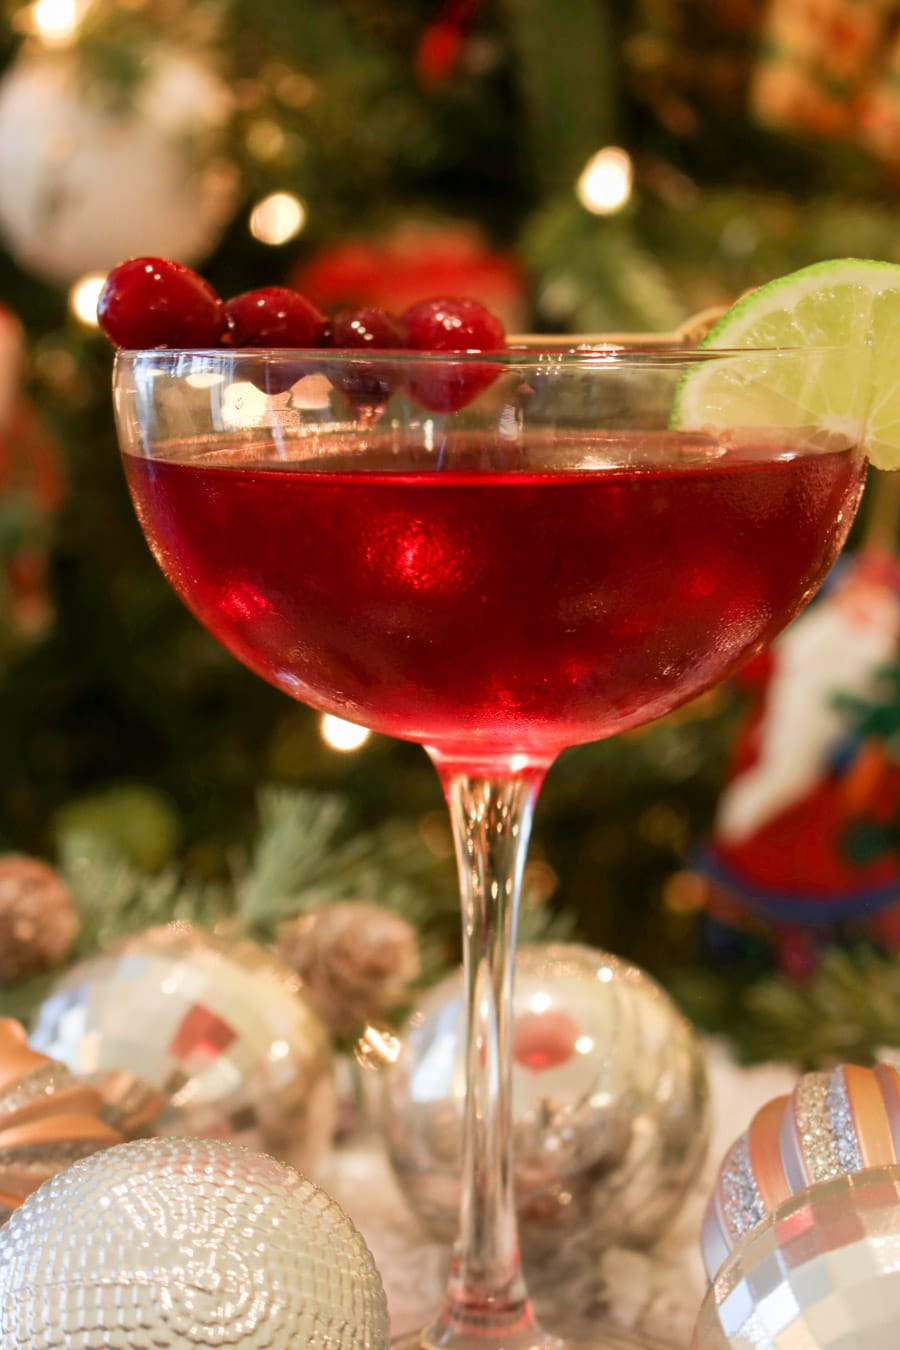 Scarlet colored cocktail in from of a Christmas tree